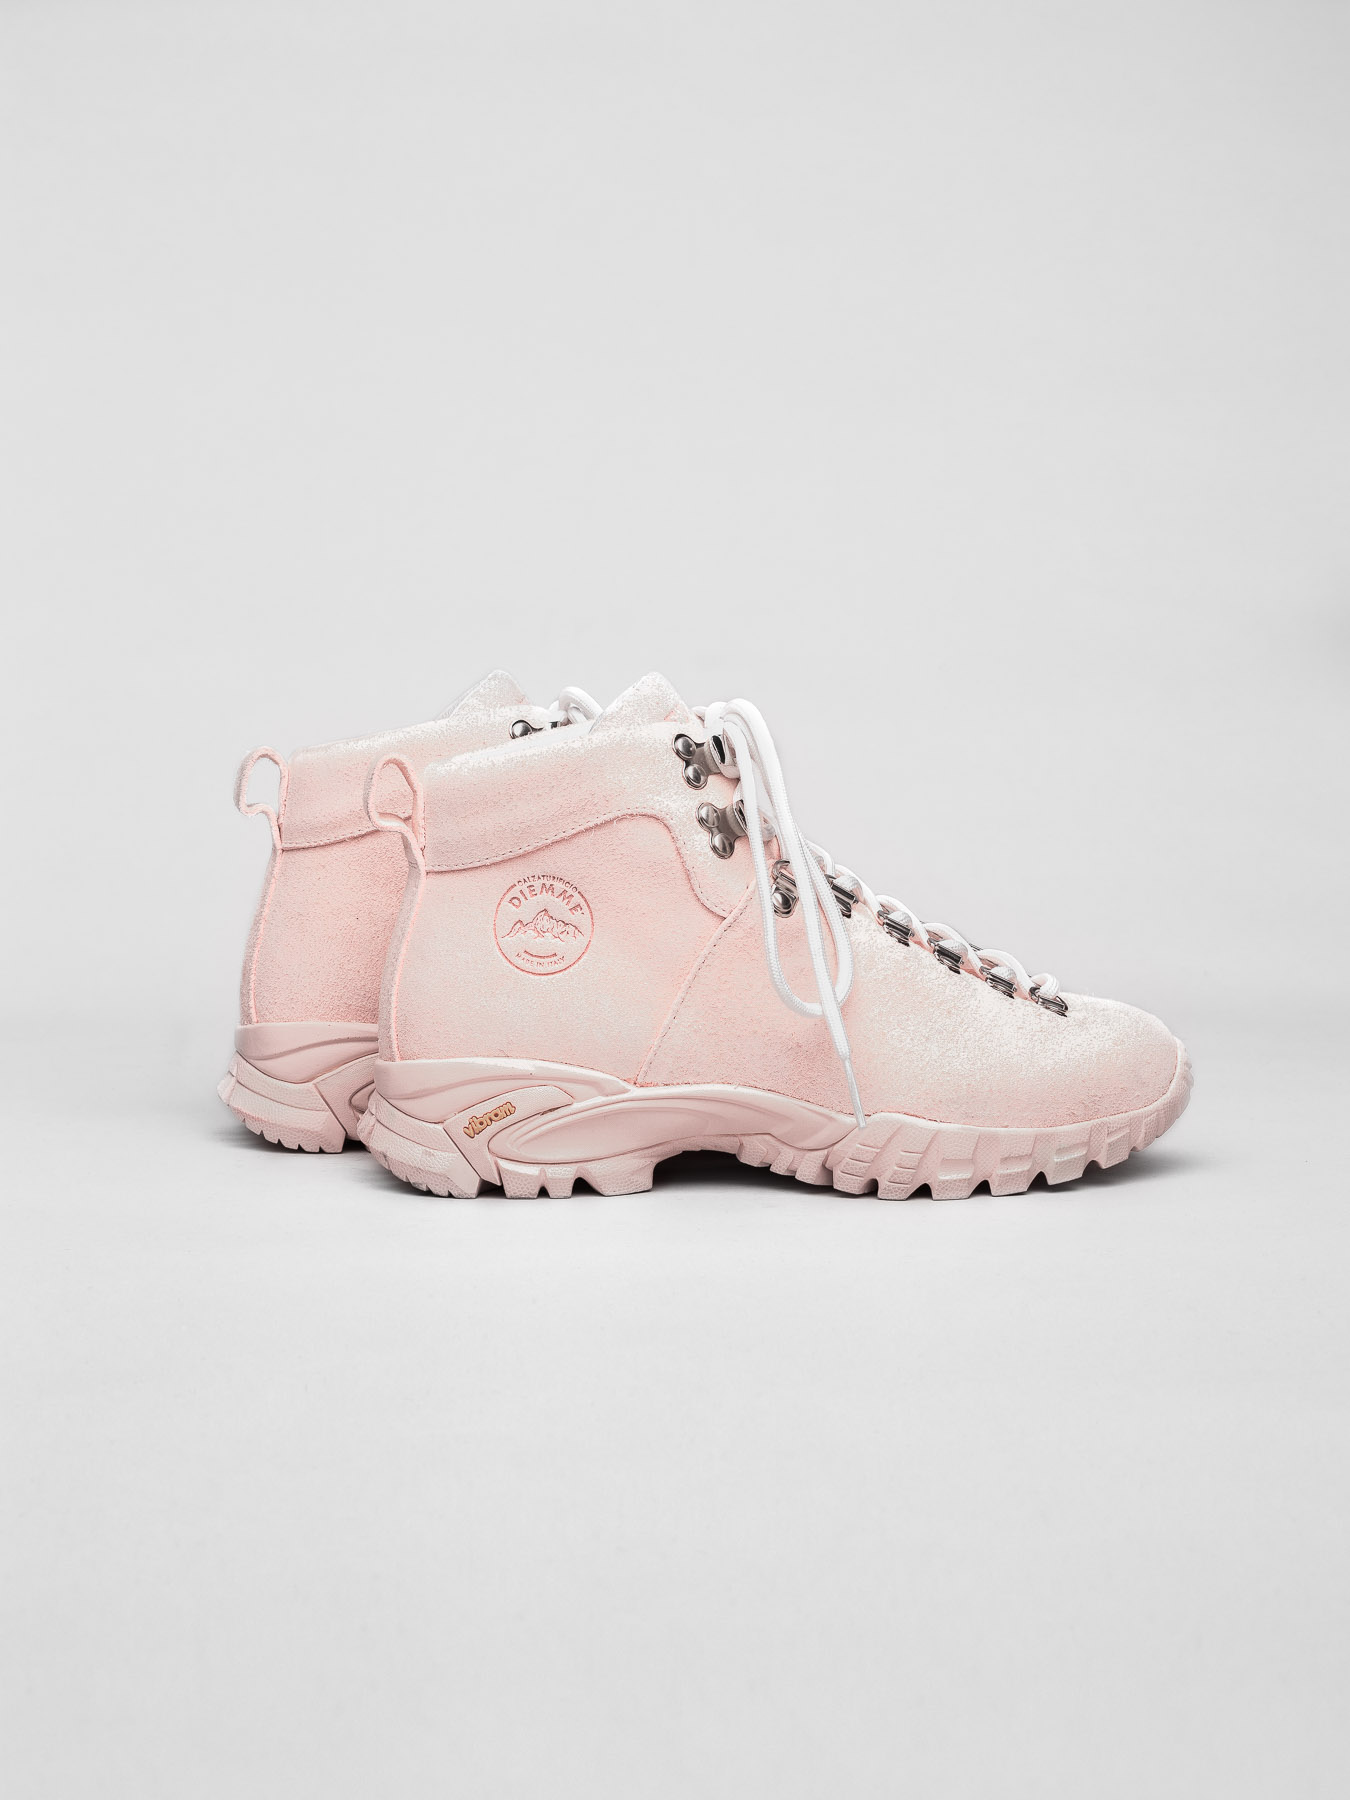 Diemme - Maser Lt. Hiker Light Pink - Women Mid-top Hiking Boots